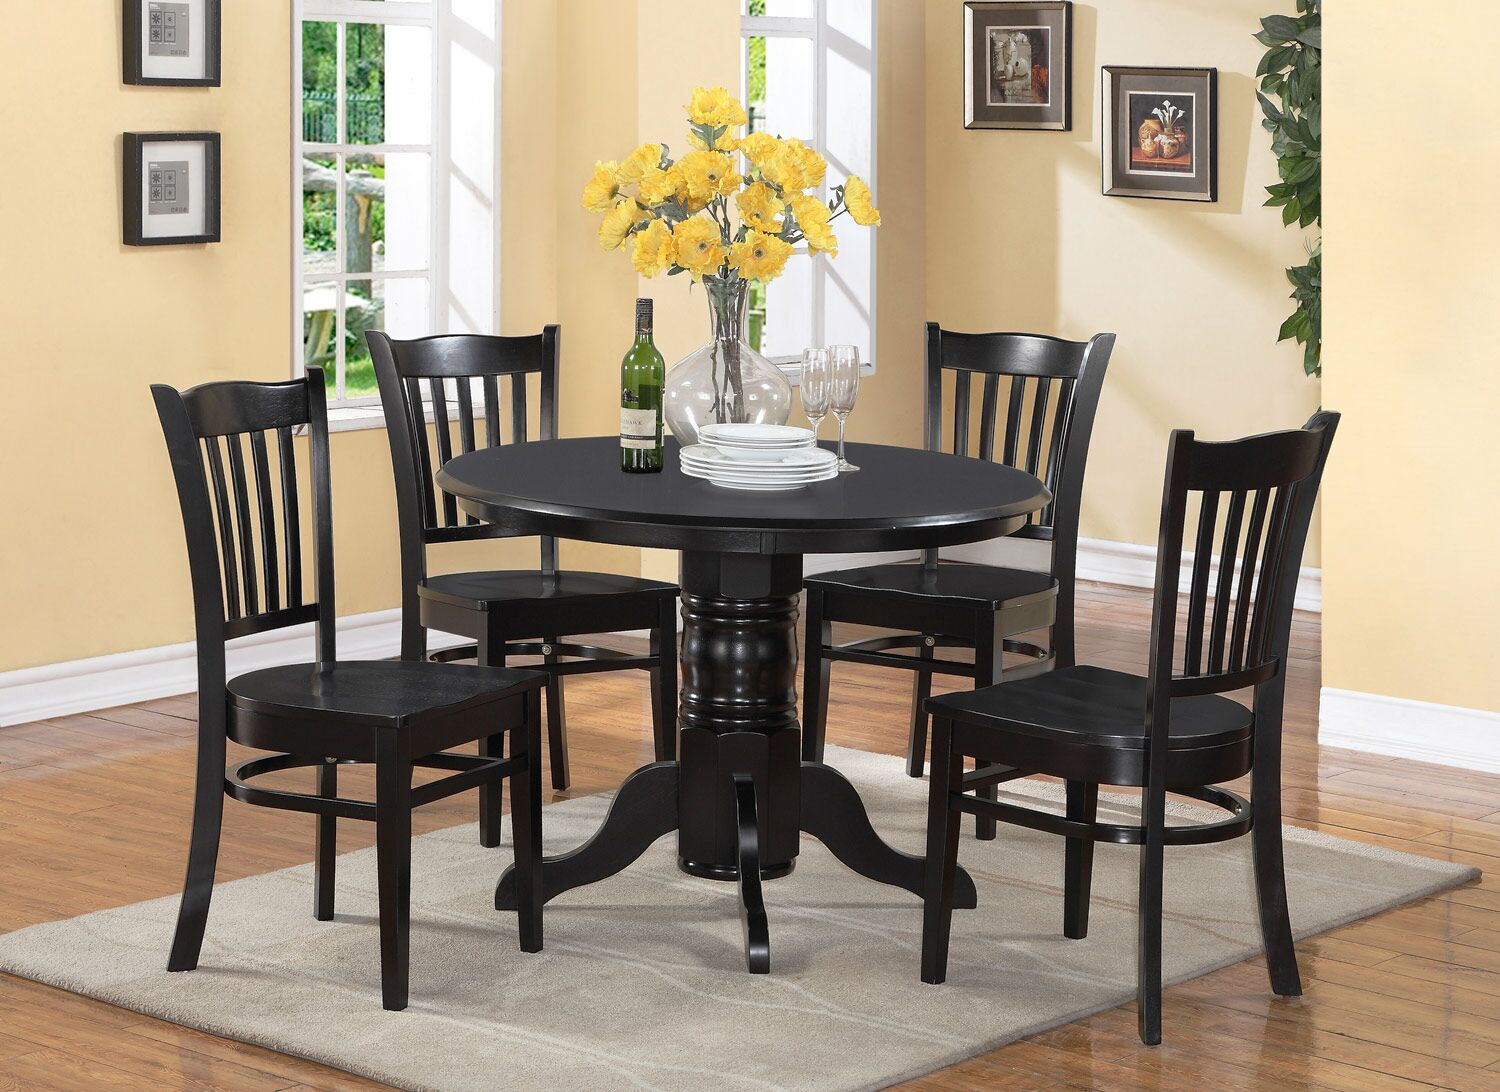 Dining Table Sets Langwater Traditional 5 Piece Solid Wood Dining Set